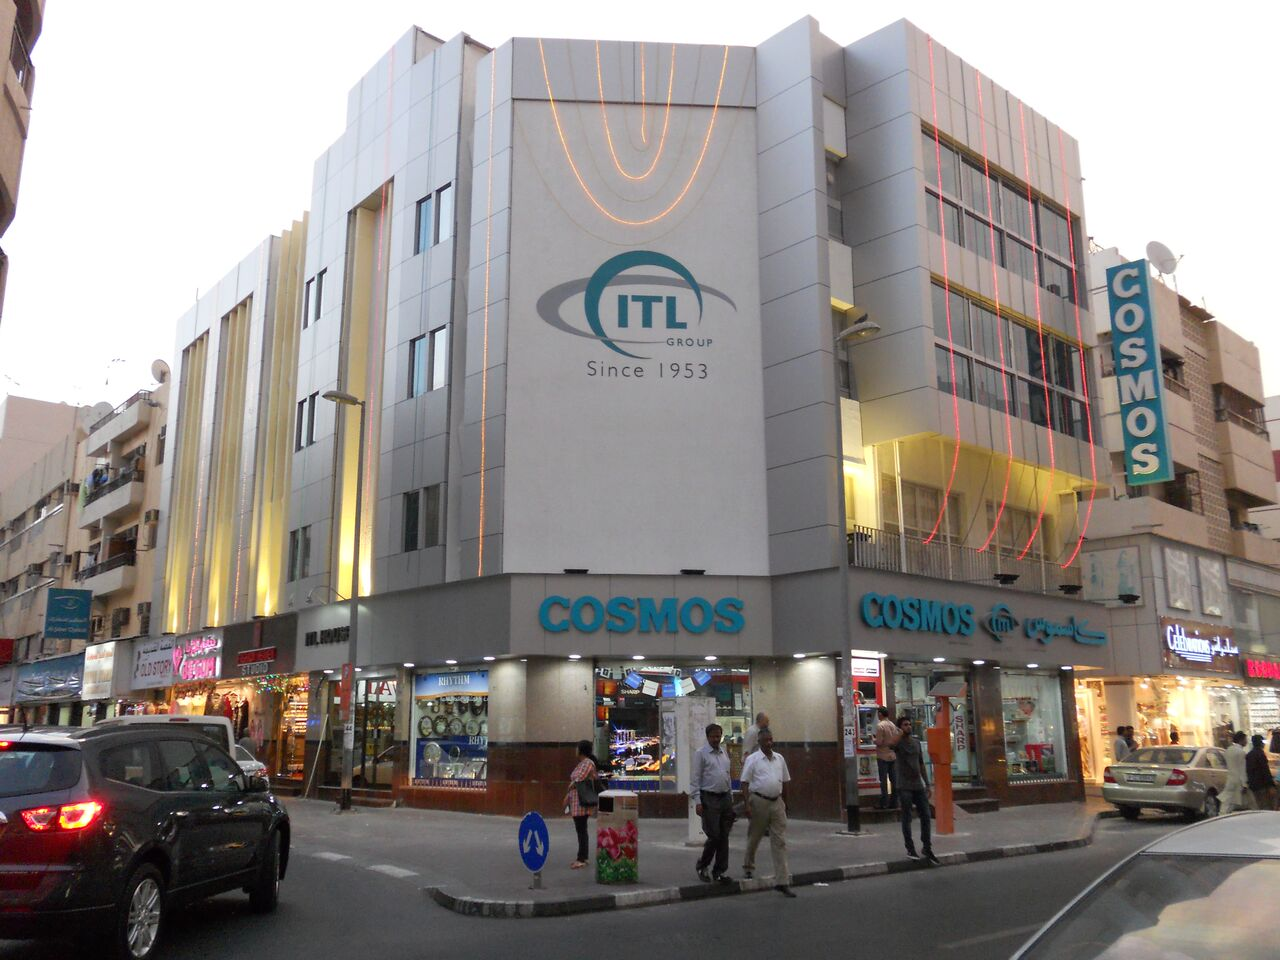 Head Office of ITL Cosmos Group in Dubai which has a turnover of USD 300 million. Photo courtesy: ITL Cosmos Group